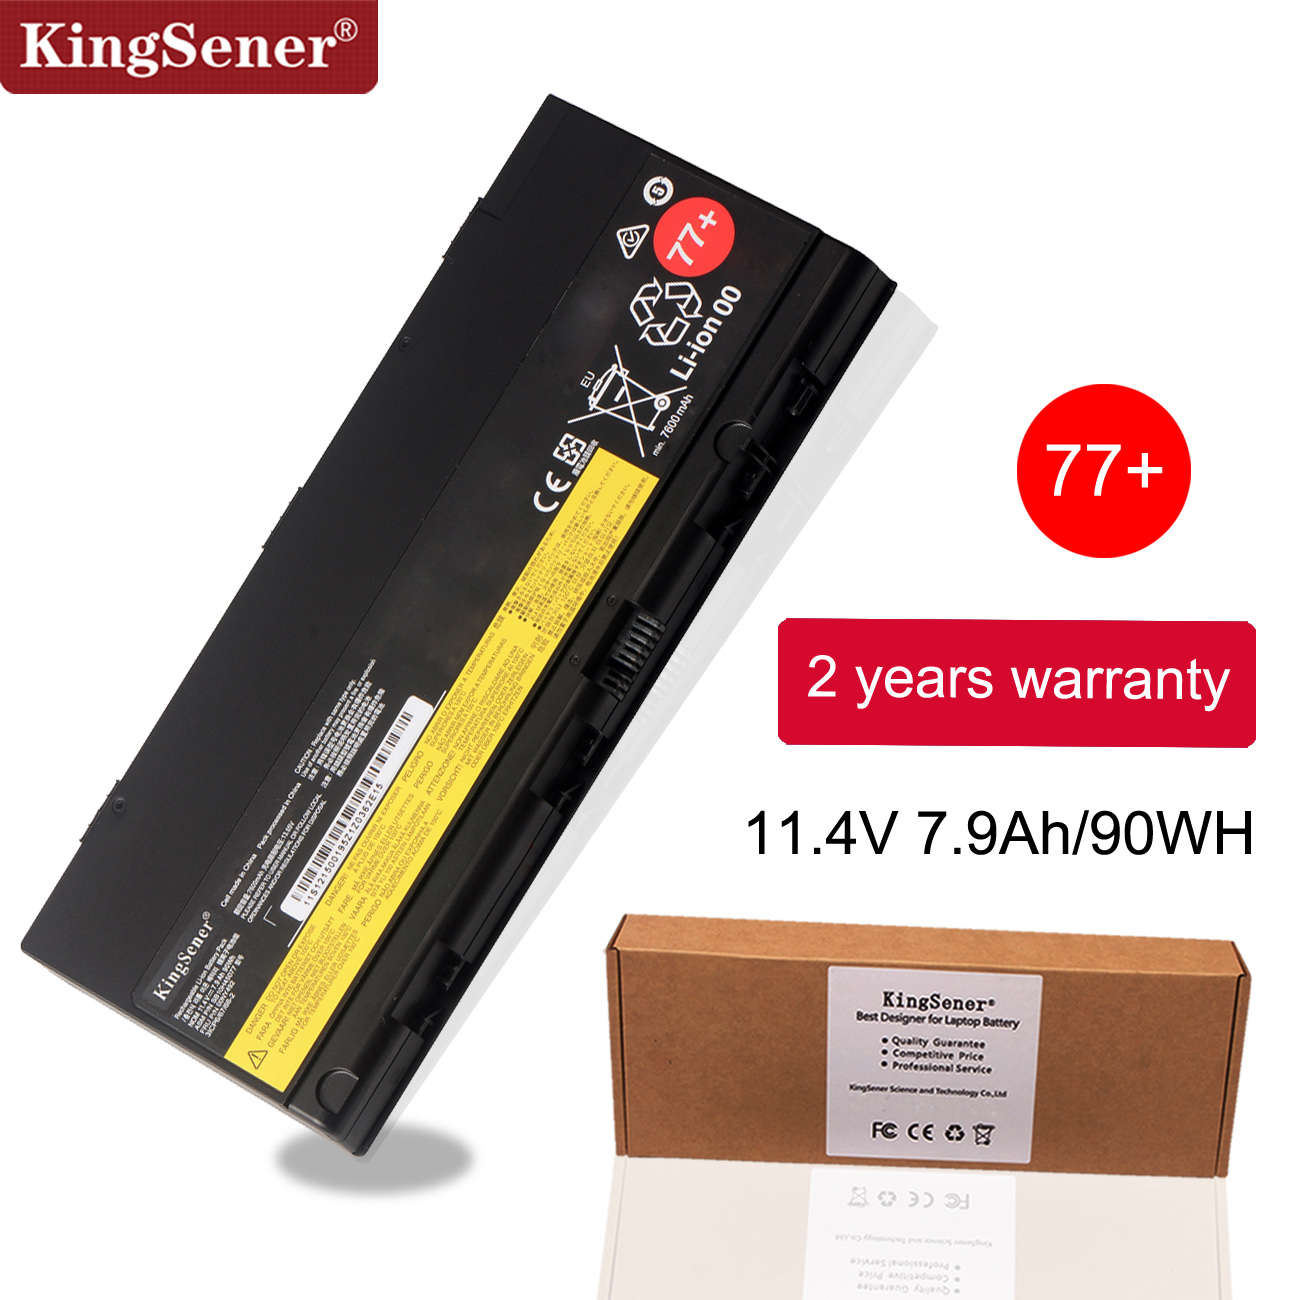 KingSener New Laptop Battery For LENOVO Thinkpad P50 P51 P52 00NY490 00NY491 00NY492 SB10H45075 SB10H45076 SB10H45077 SB10H45078